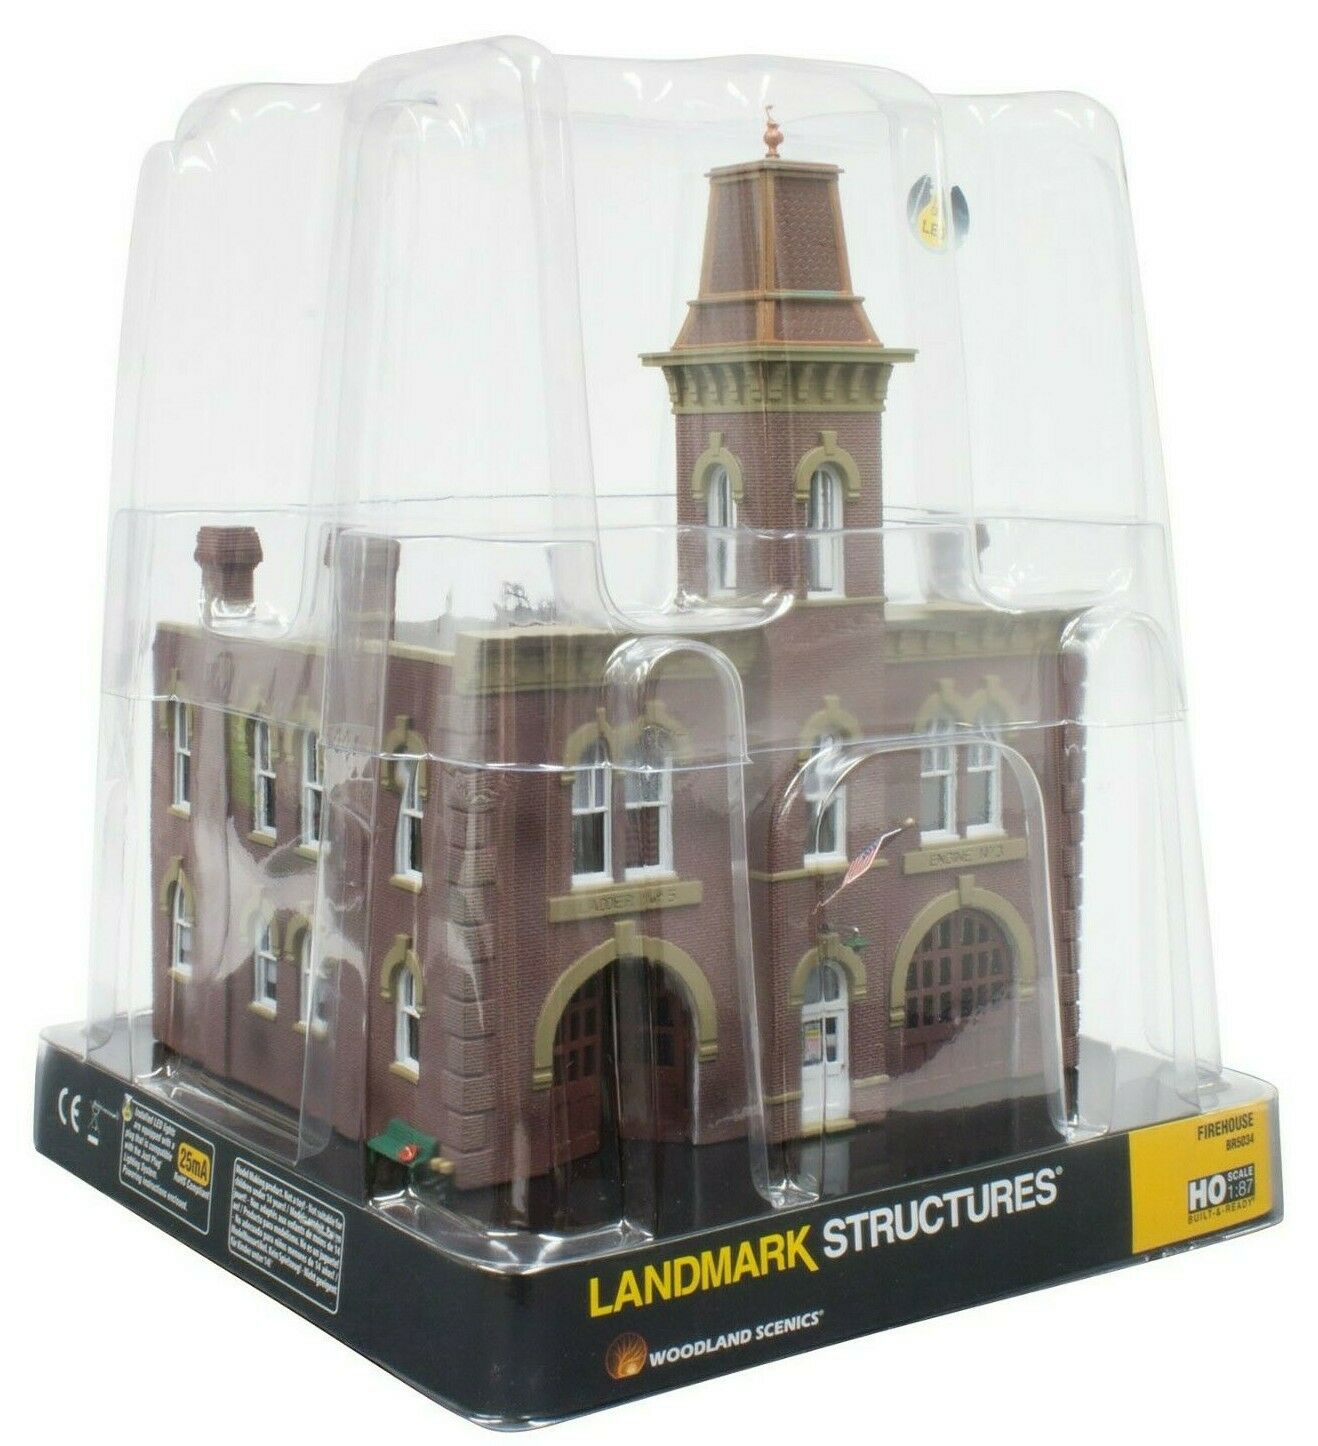 HO Scale Woodland Scenics BR5034 Firehouse Built & Ready Landmark Structure